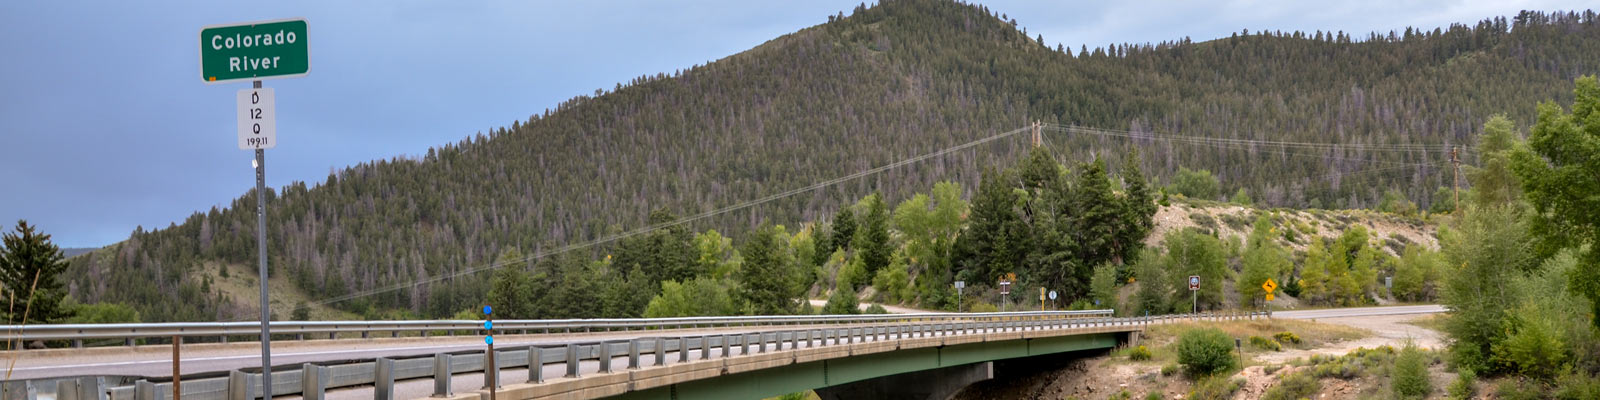 This is an image of a bridge over the Colorado River in Colorado Springs Colorado. ASTA-USA provides professional translation services in this city.